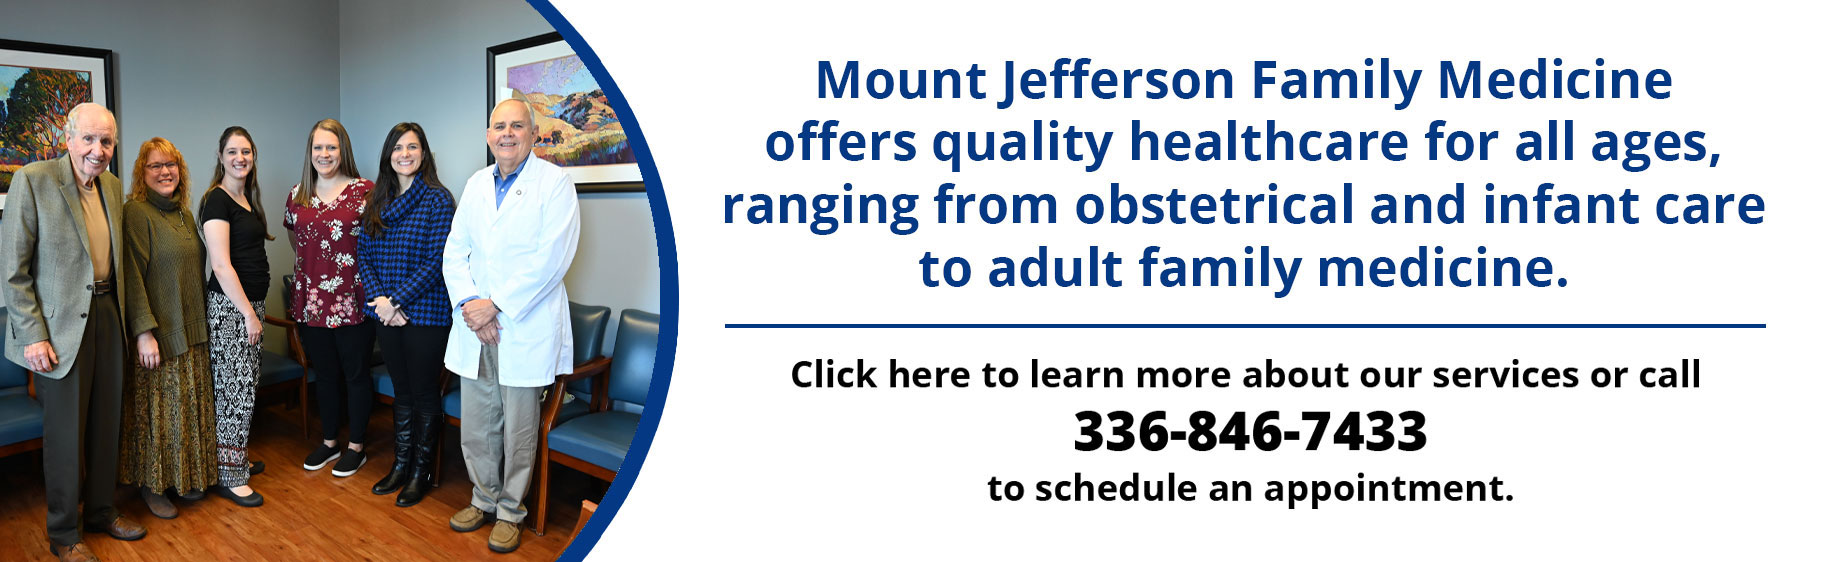 Pictured is our professional staff from Mount Jefferson Family Medicine. Mount Jefferson Family Medicine offers quality healthcare for all ages, ranging from obstetrical and infant care to adult family medicine.  Click here to learn more about our services or call 336-846-7433 to schedule an appointment.